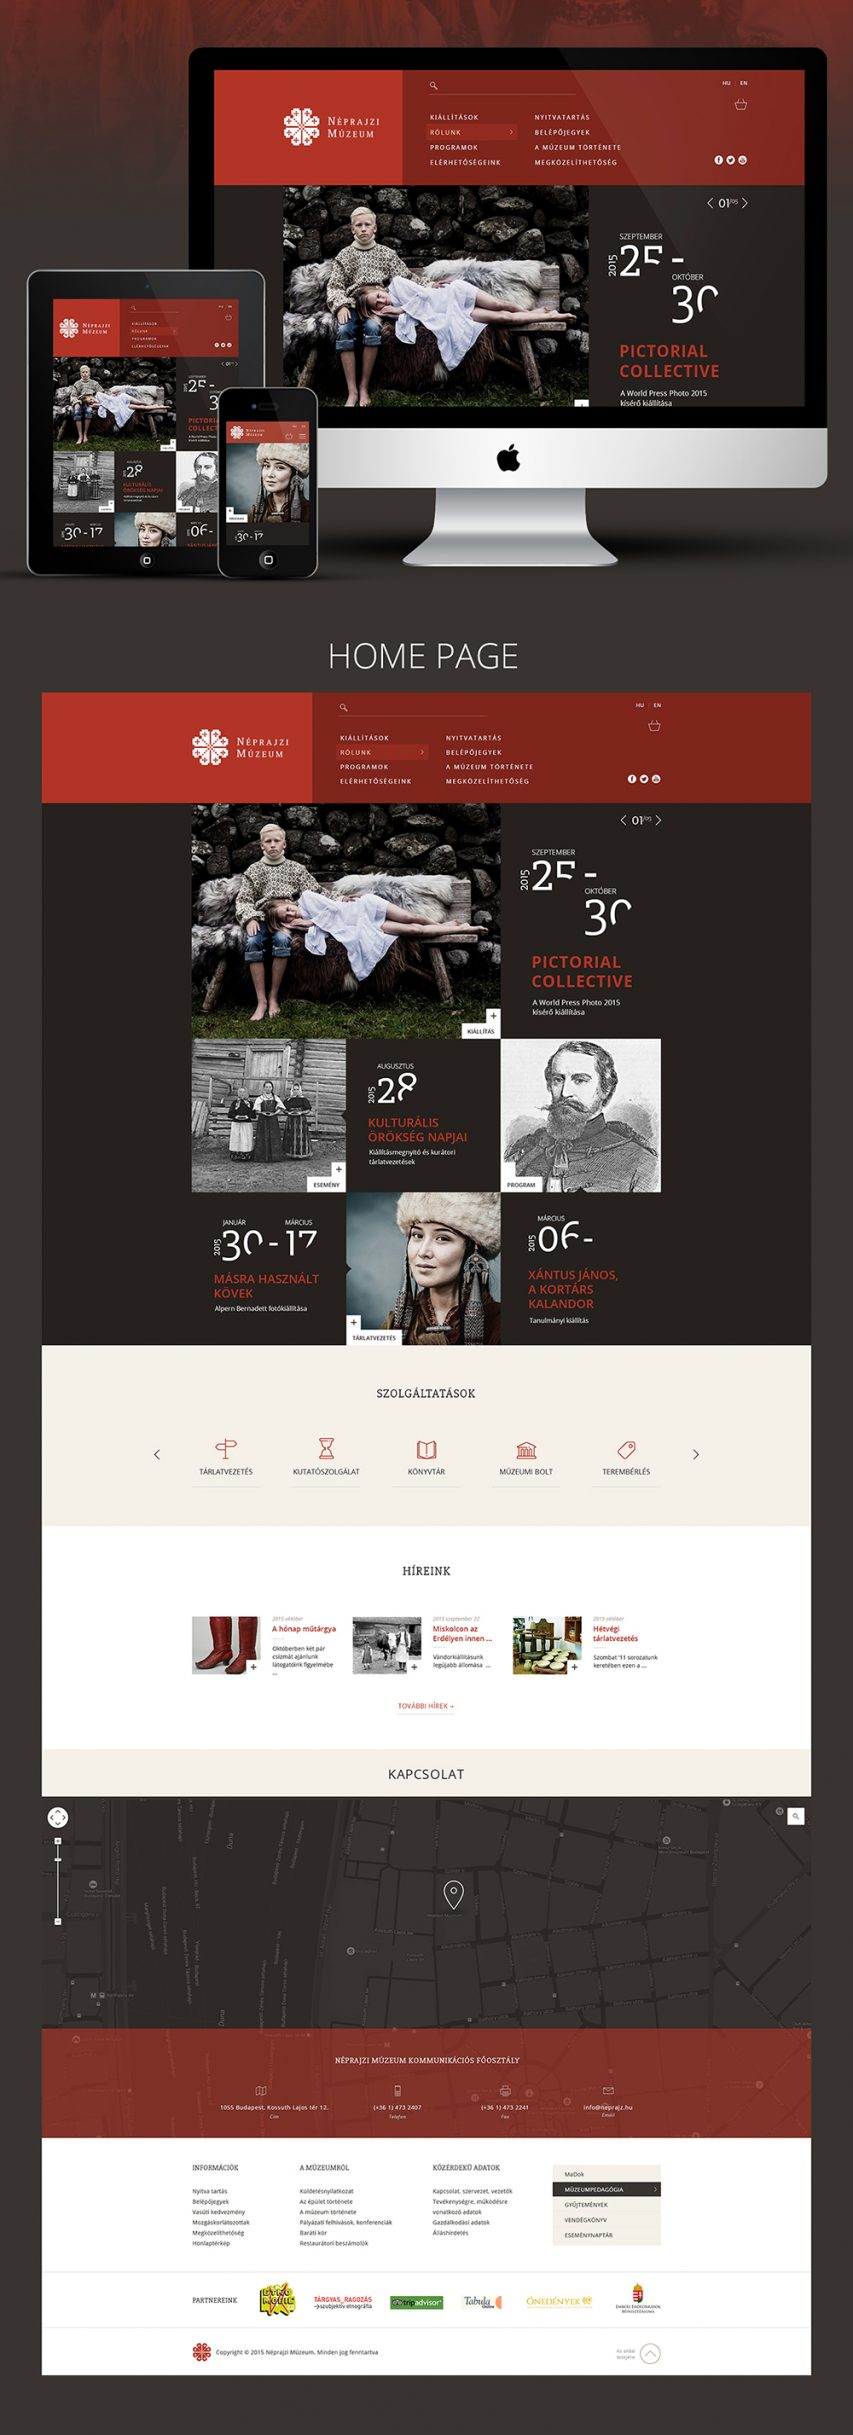 Free Photo Gallery Exhibition Website Free PSD Landing page at ...